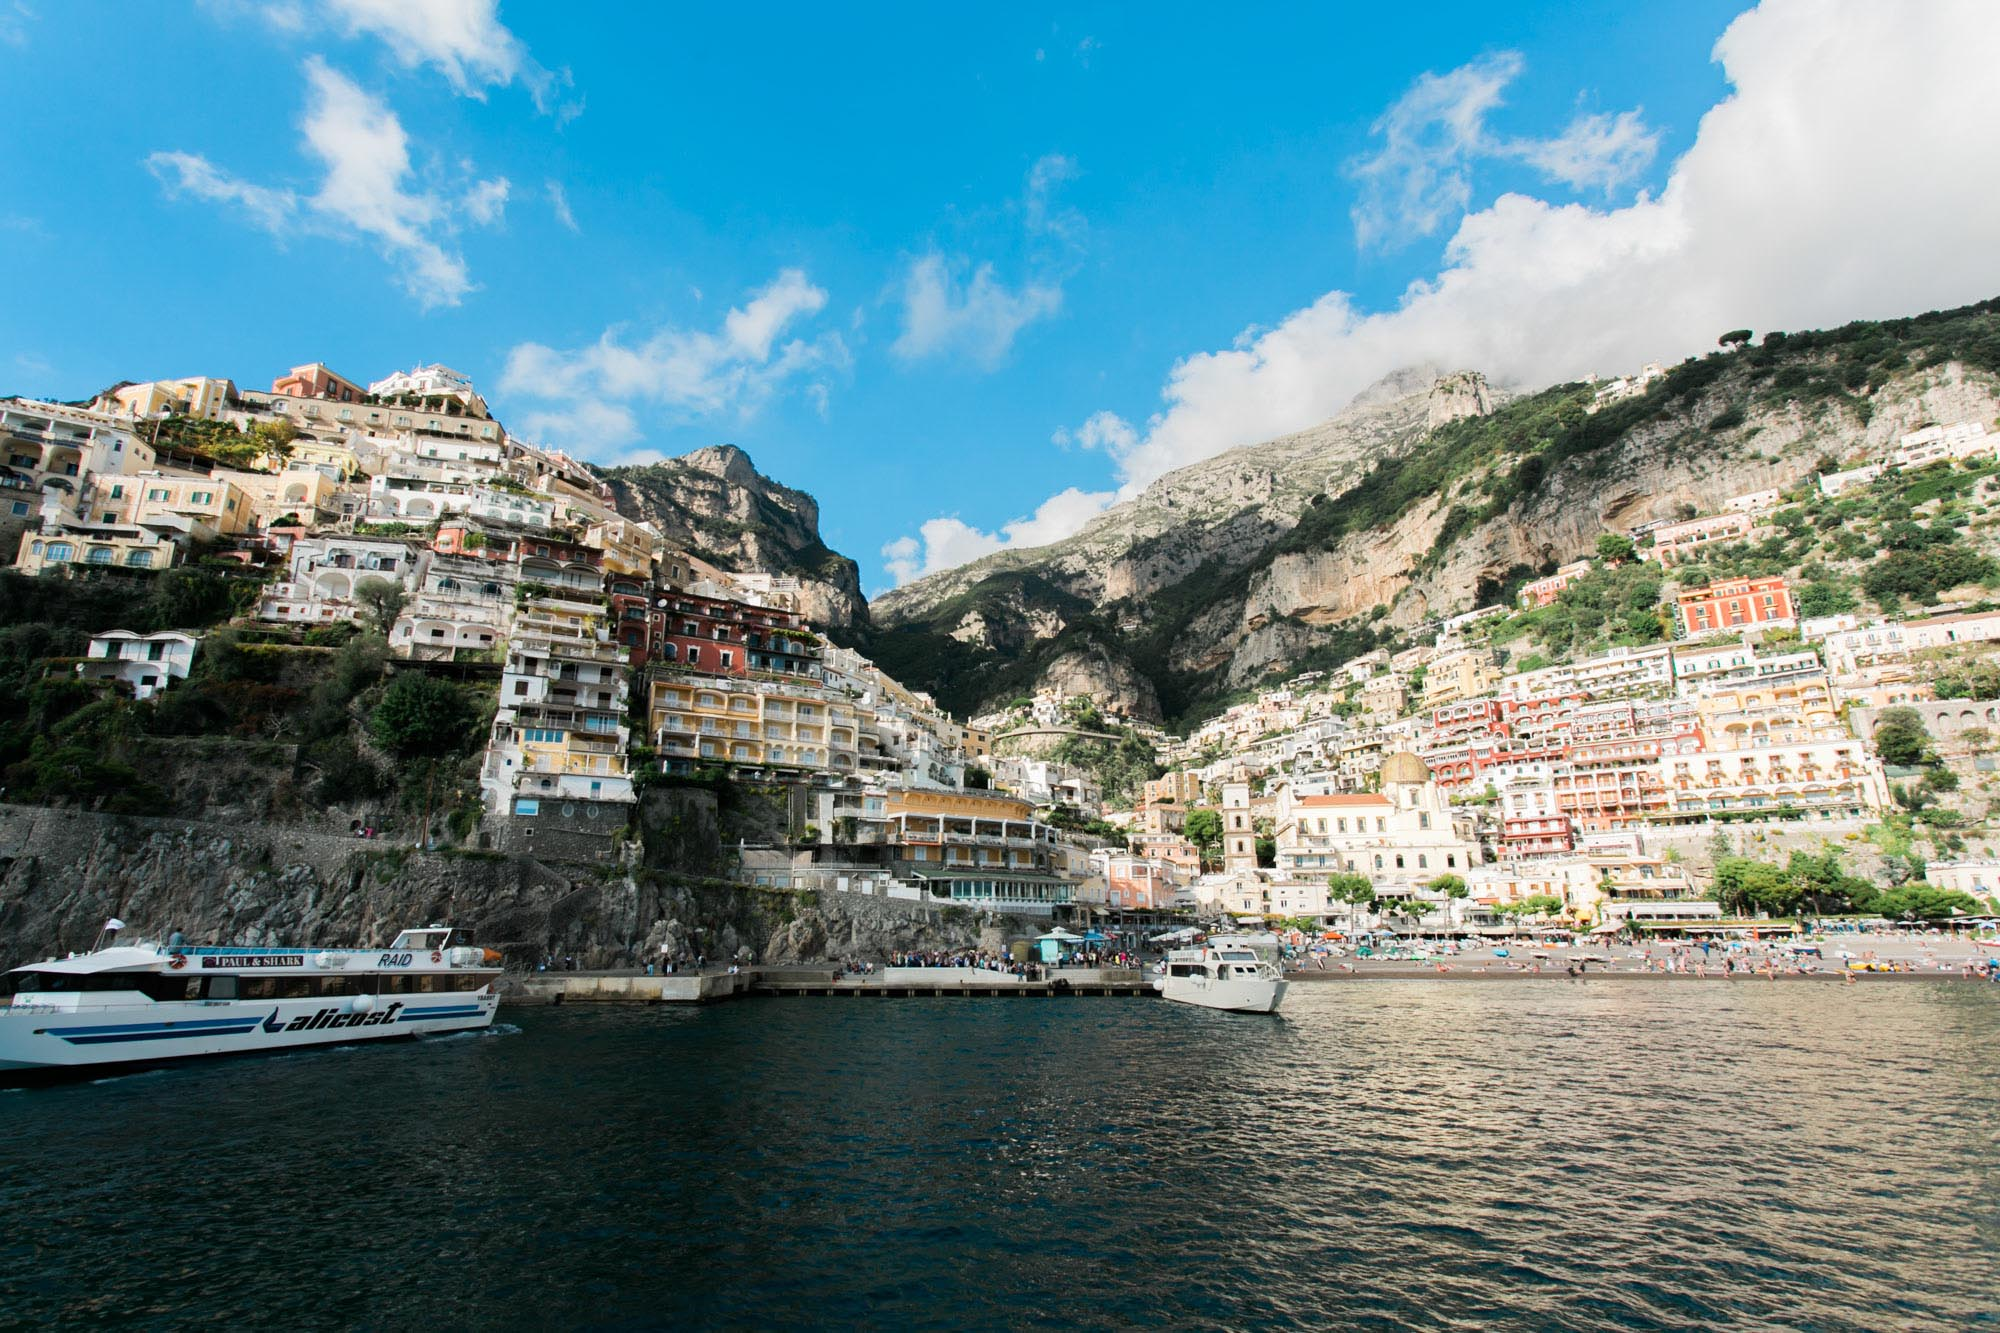 joeewong-reke-italy-amalfi-coast-positano-honeymoon-19